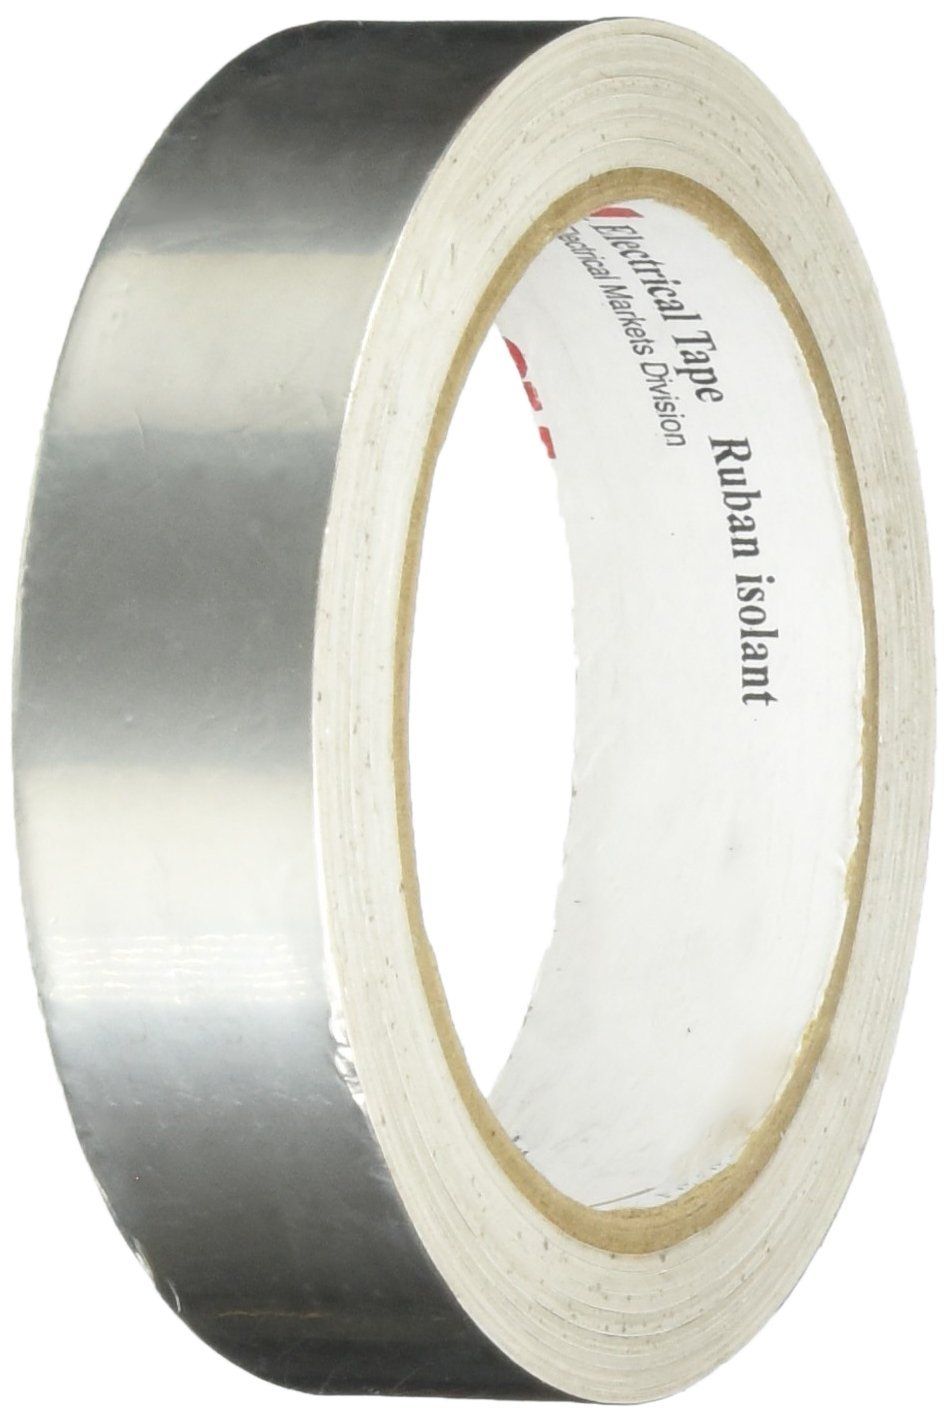 3M 1183 Tin-Plated Foil Tape, with Conductive Adhesive- Silver, 18 yds length, 1'' width, 1 roll